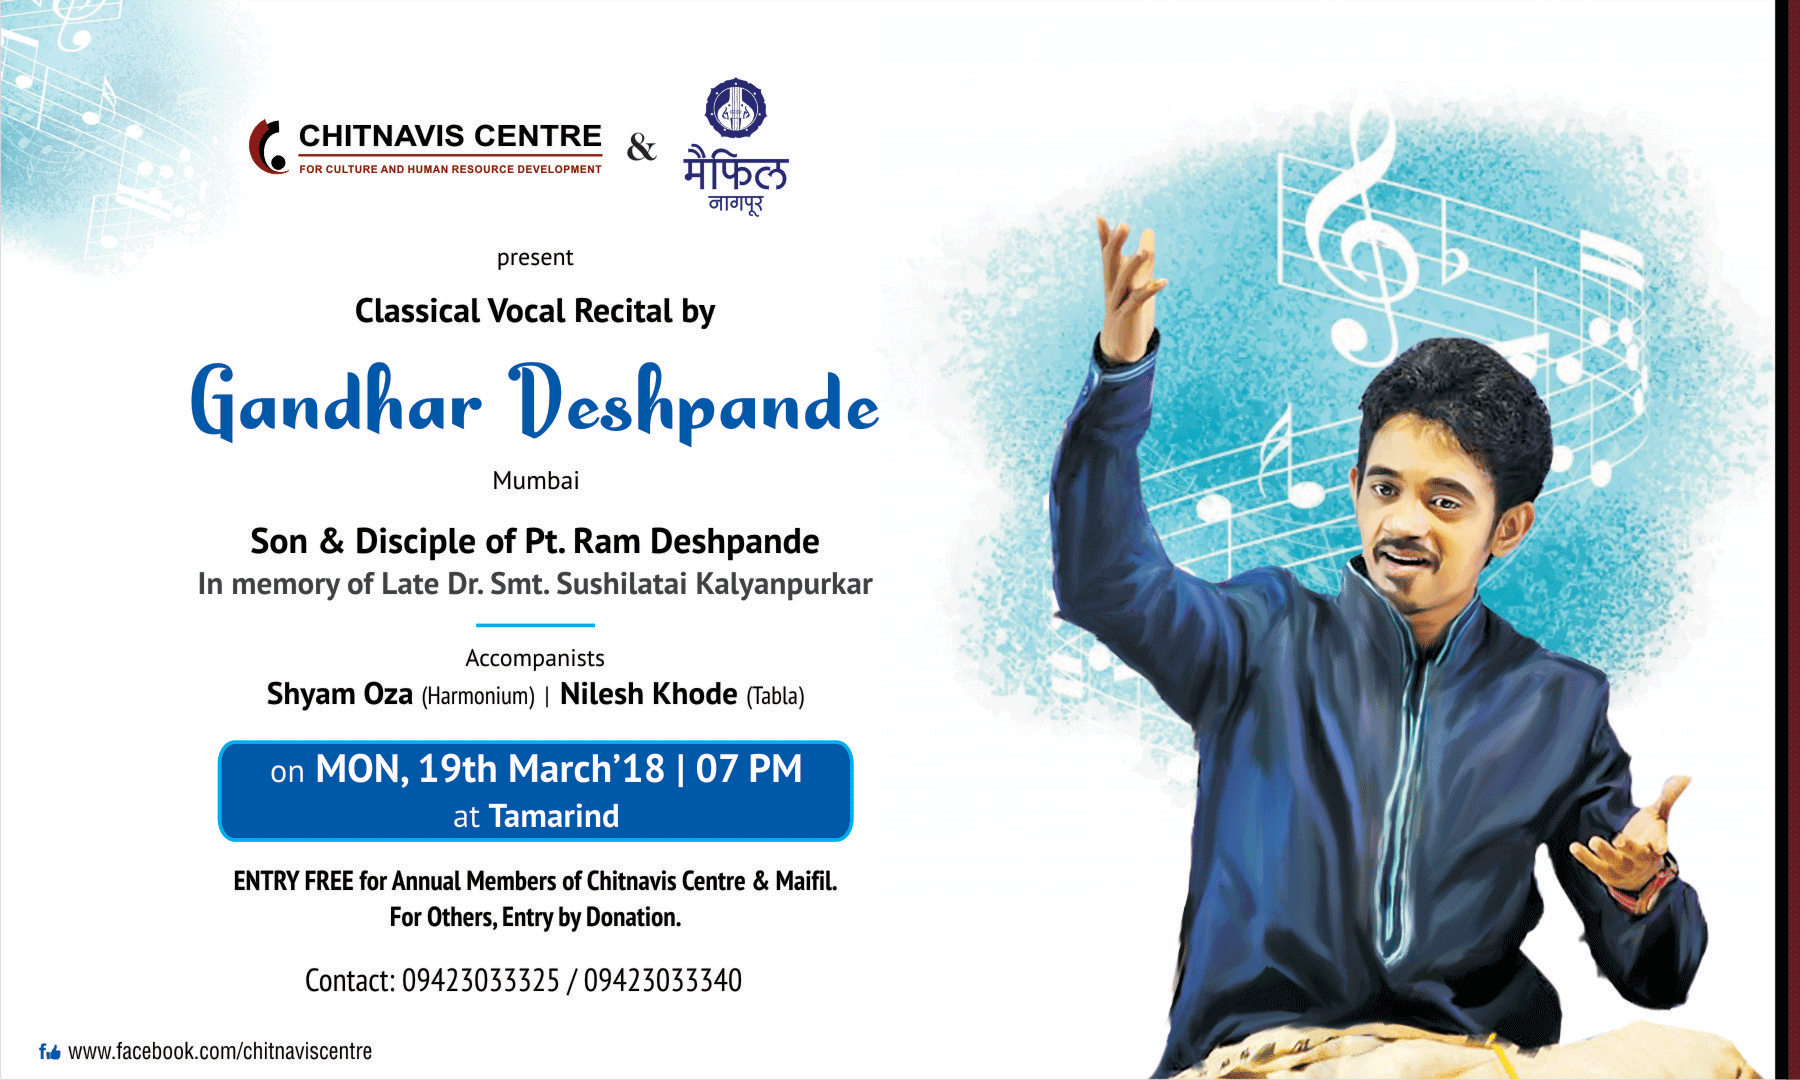 Classical Vocal Recital by Gandhar Deshpande